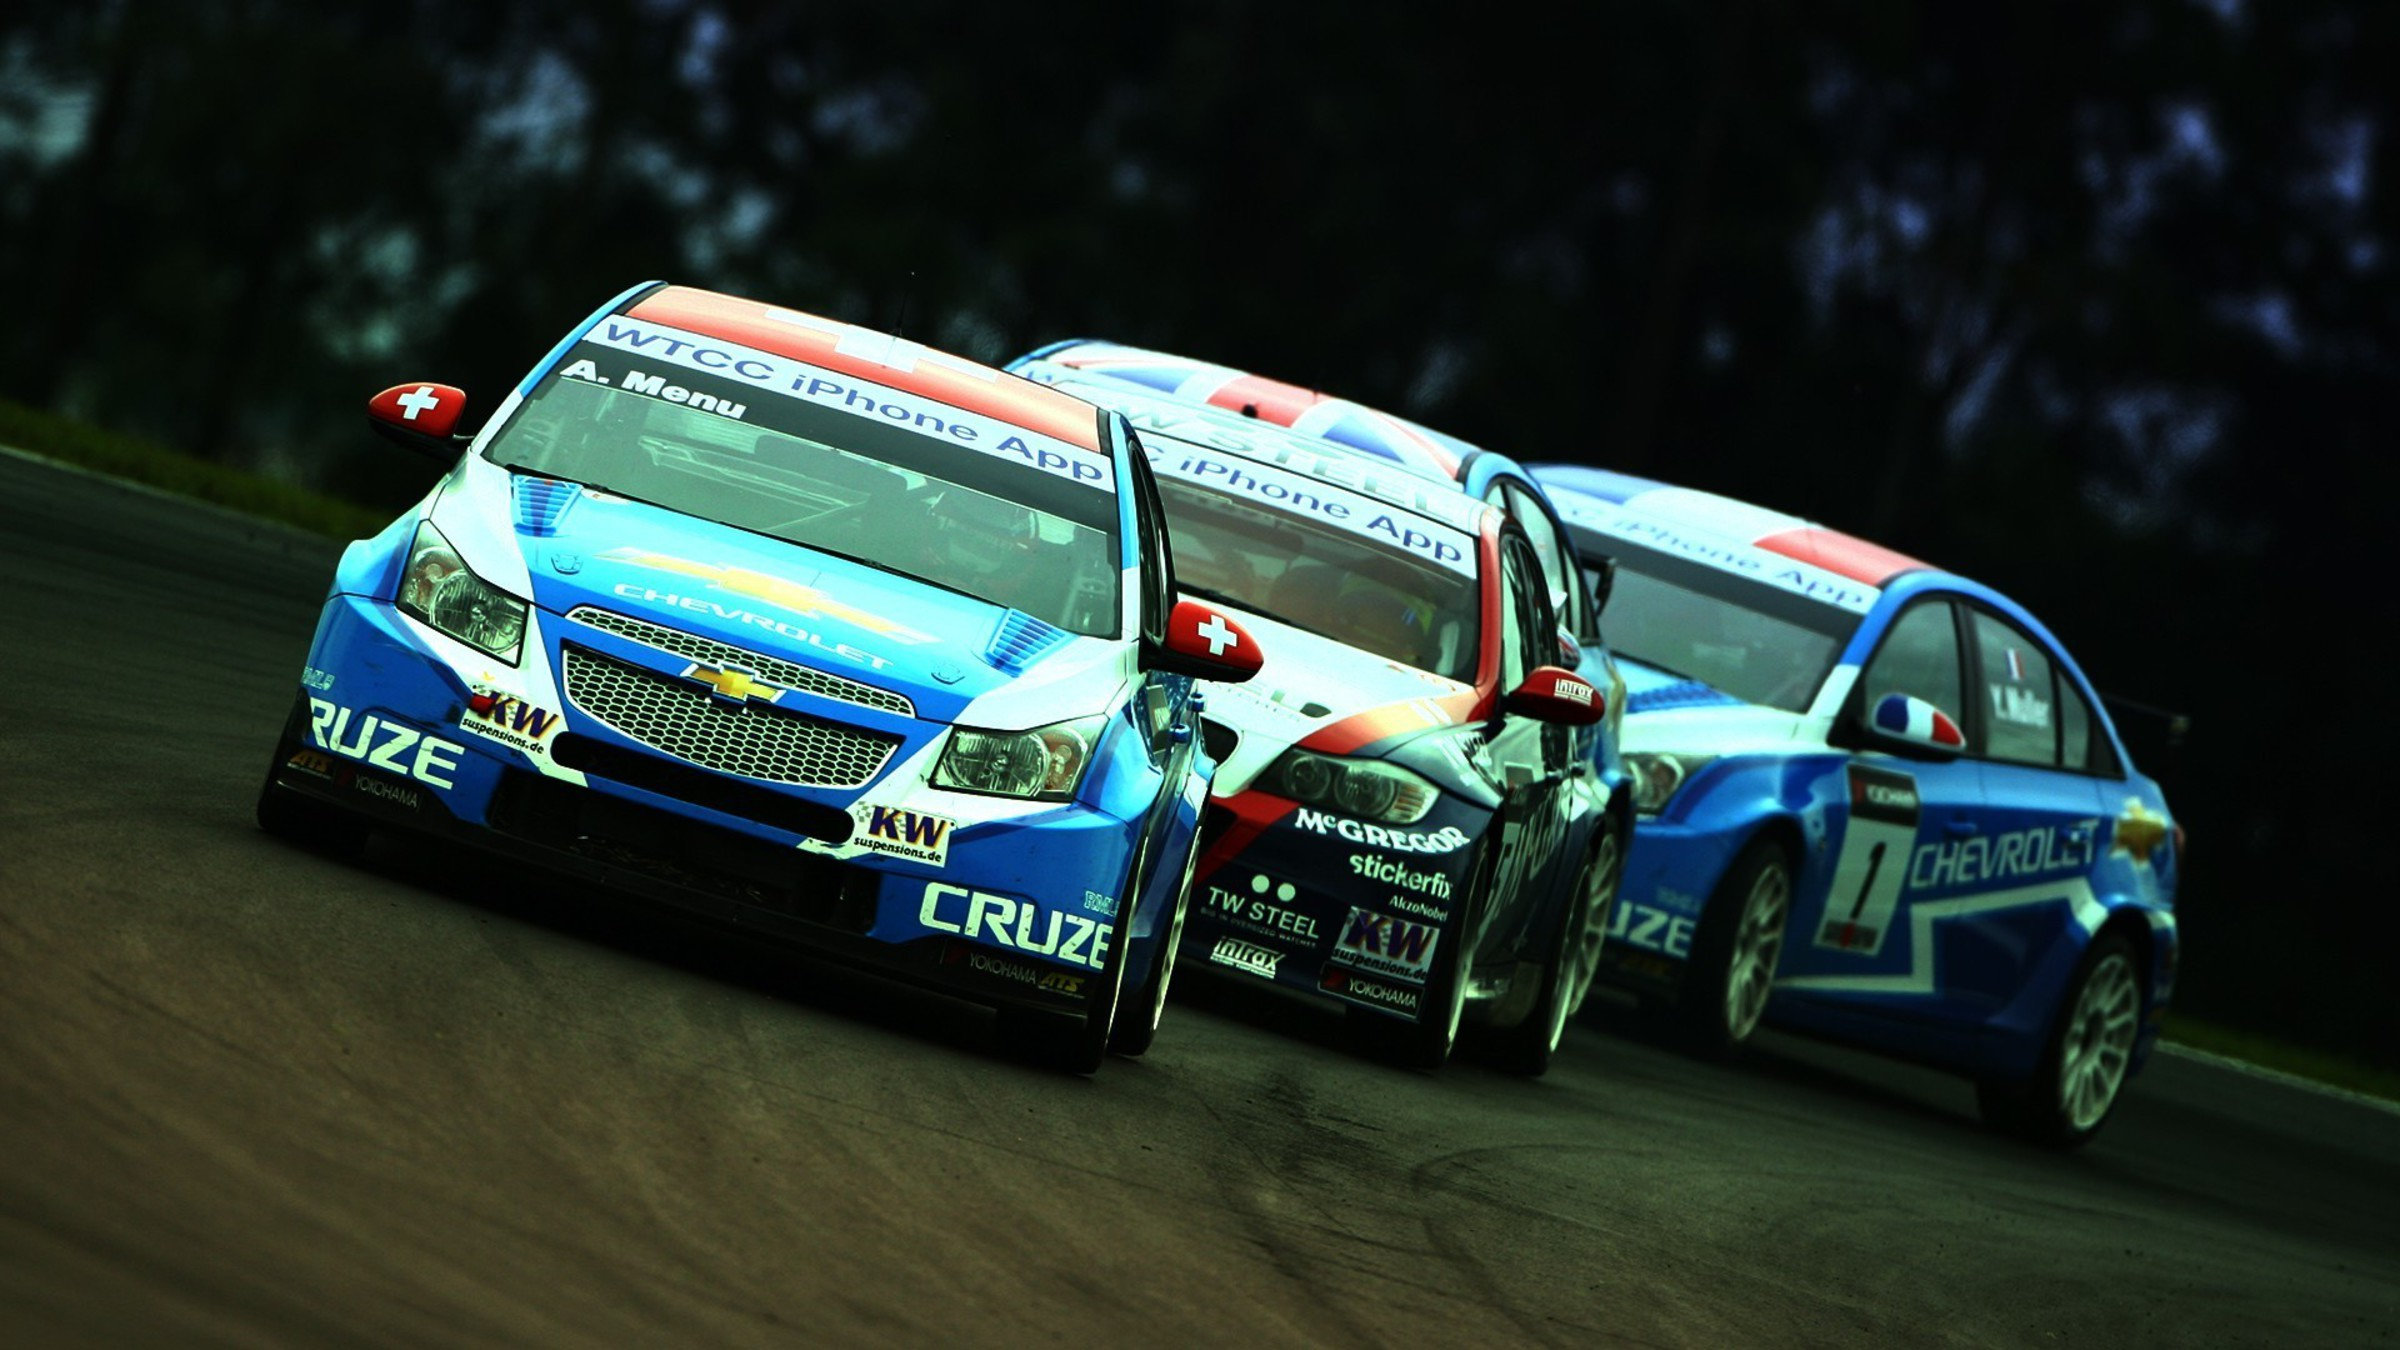 2400x1350 - WTCC Racing Wallpapers 39